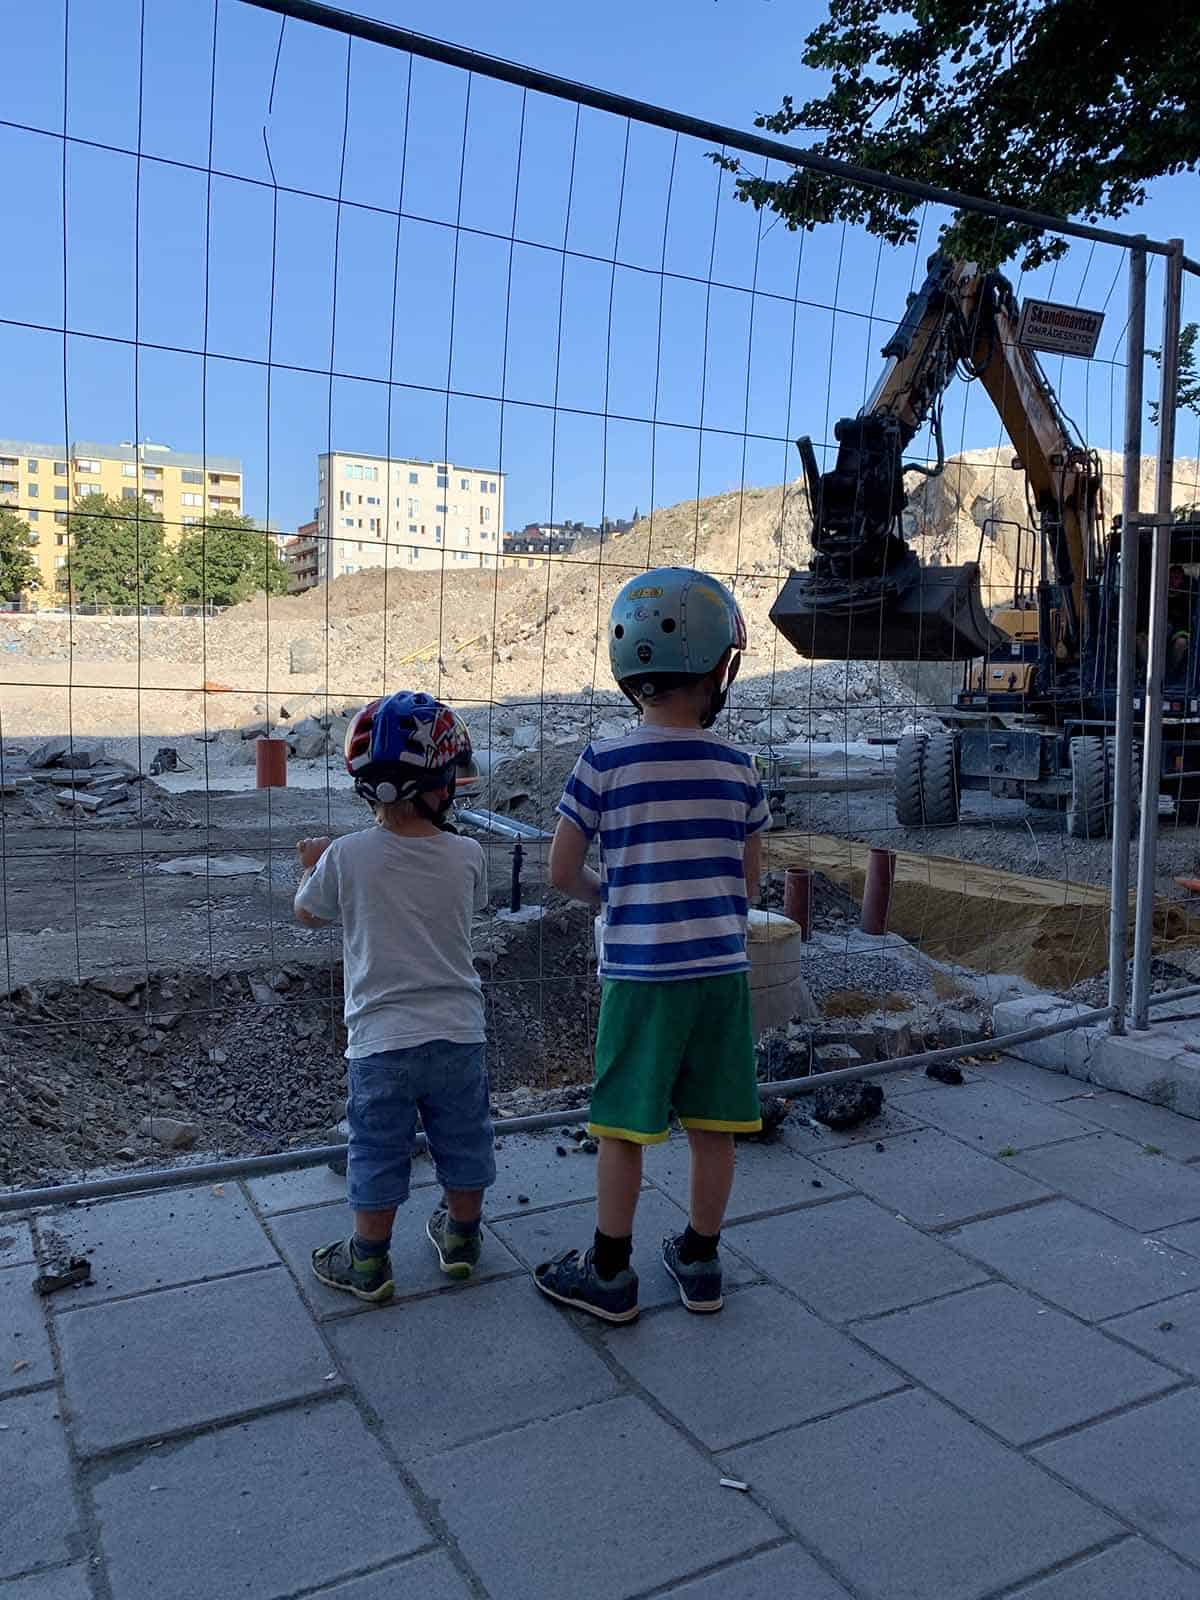 two boys watching machines in a construction site